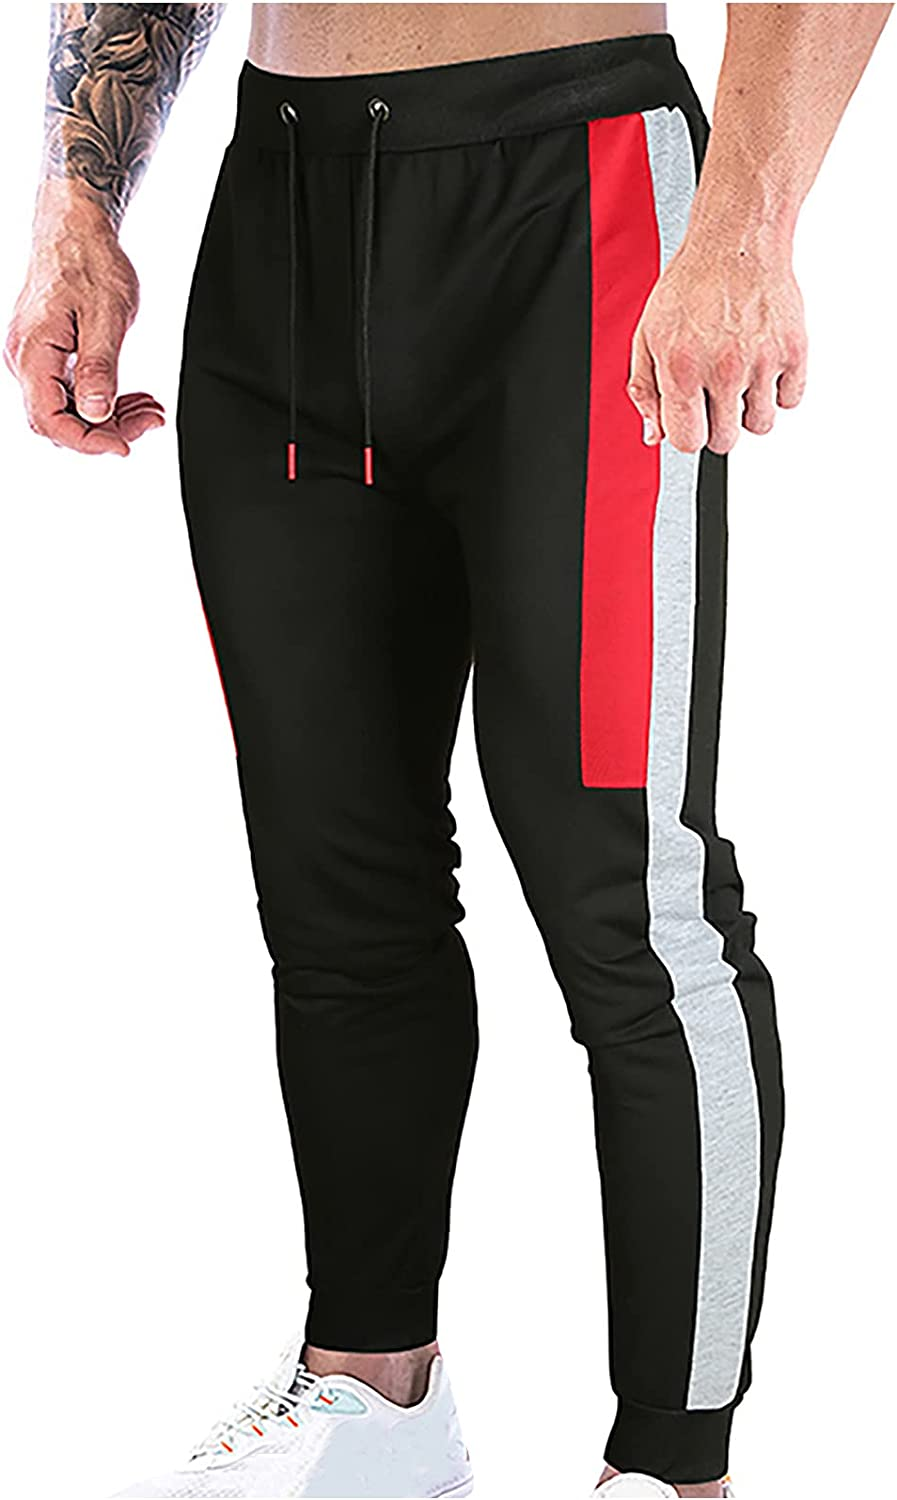 Men's Gym Sweatpants Drawstring Slim low-pricing Runnin Fit Fitness Factory outlet Exercise